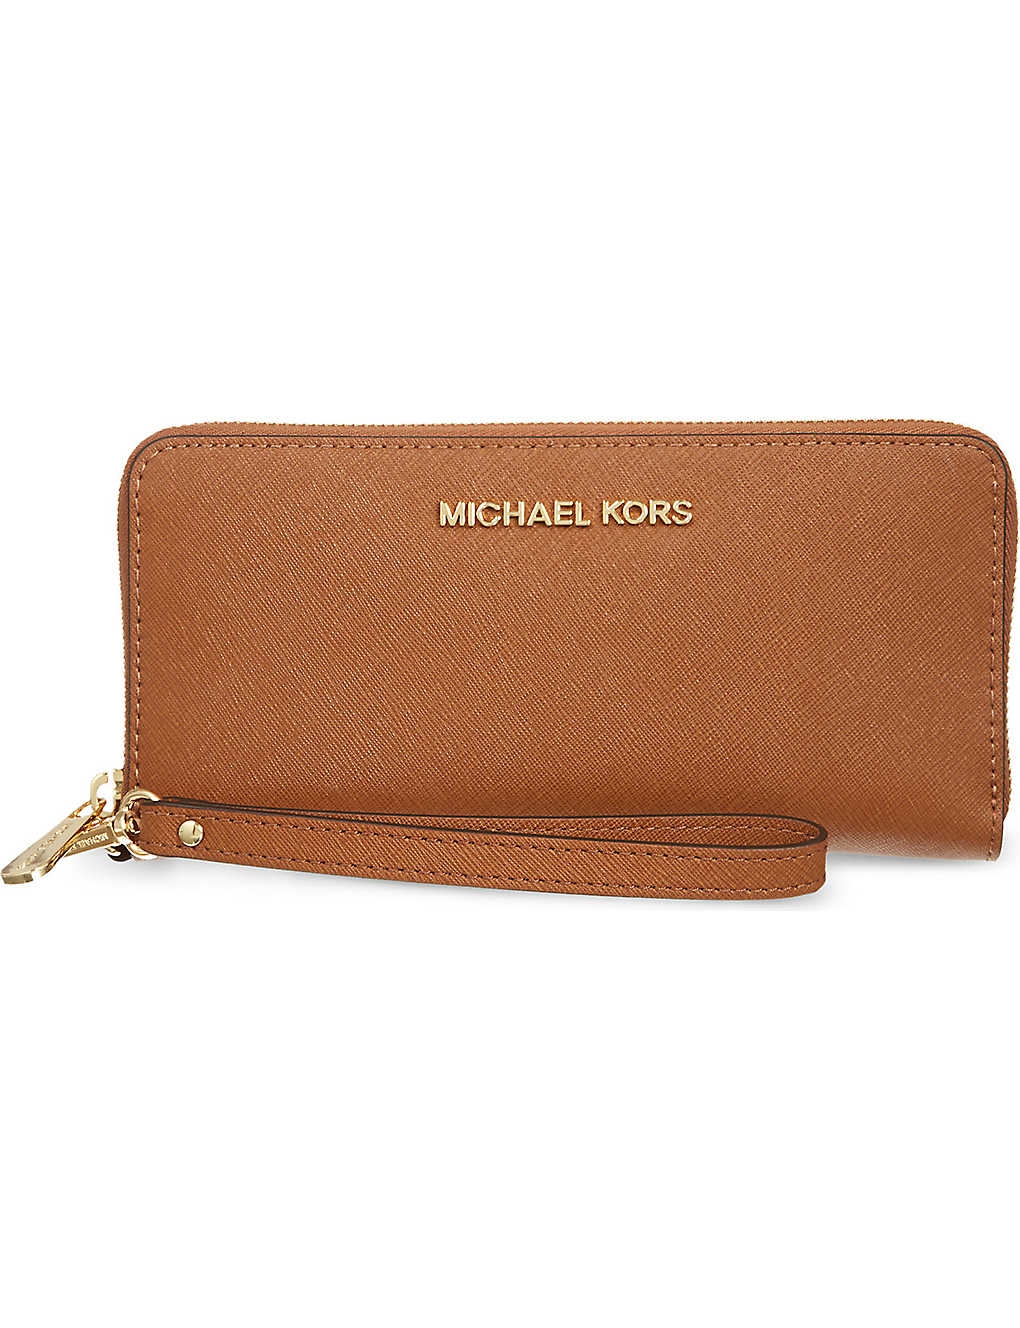 08ebe7ee0c2e MICHAEL MICHAEL KORS - Jet Set Travel leather wallet | Selfridges.com